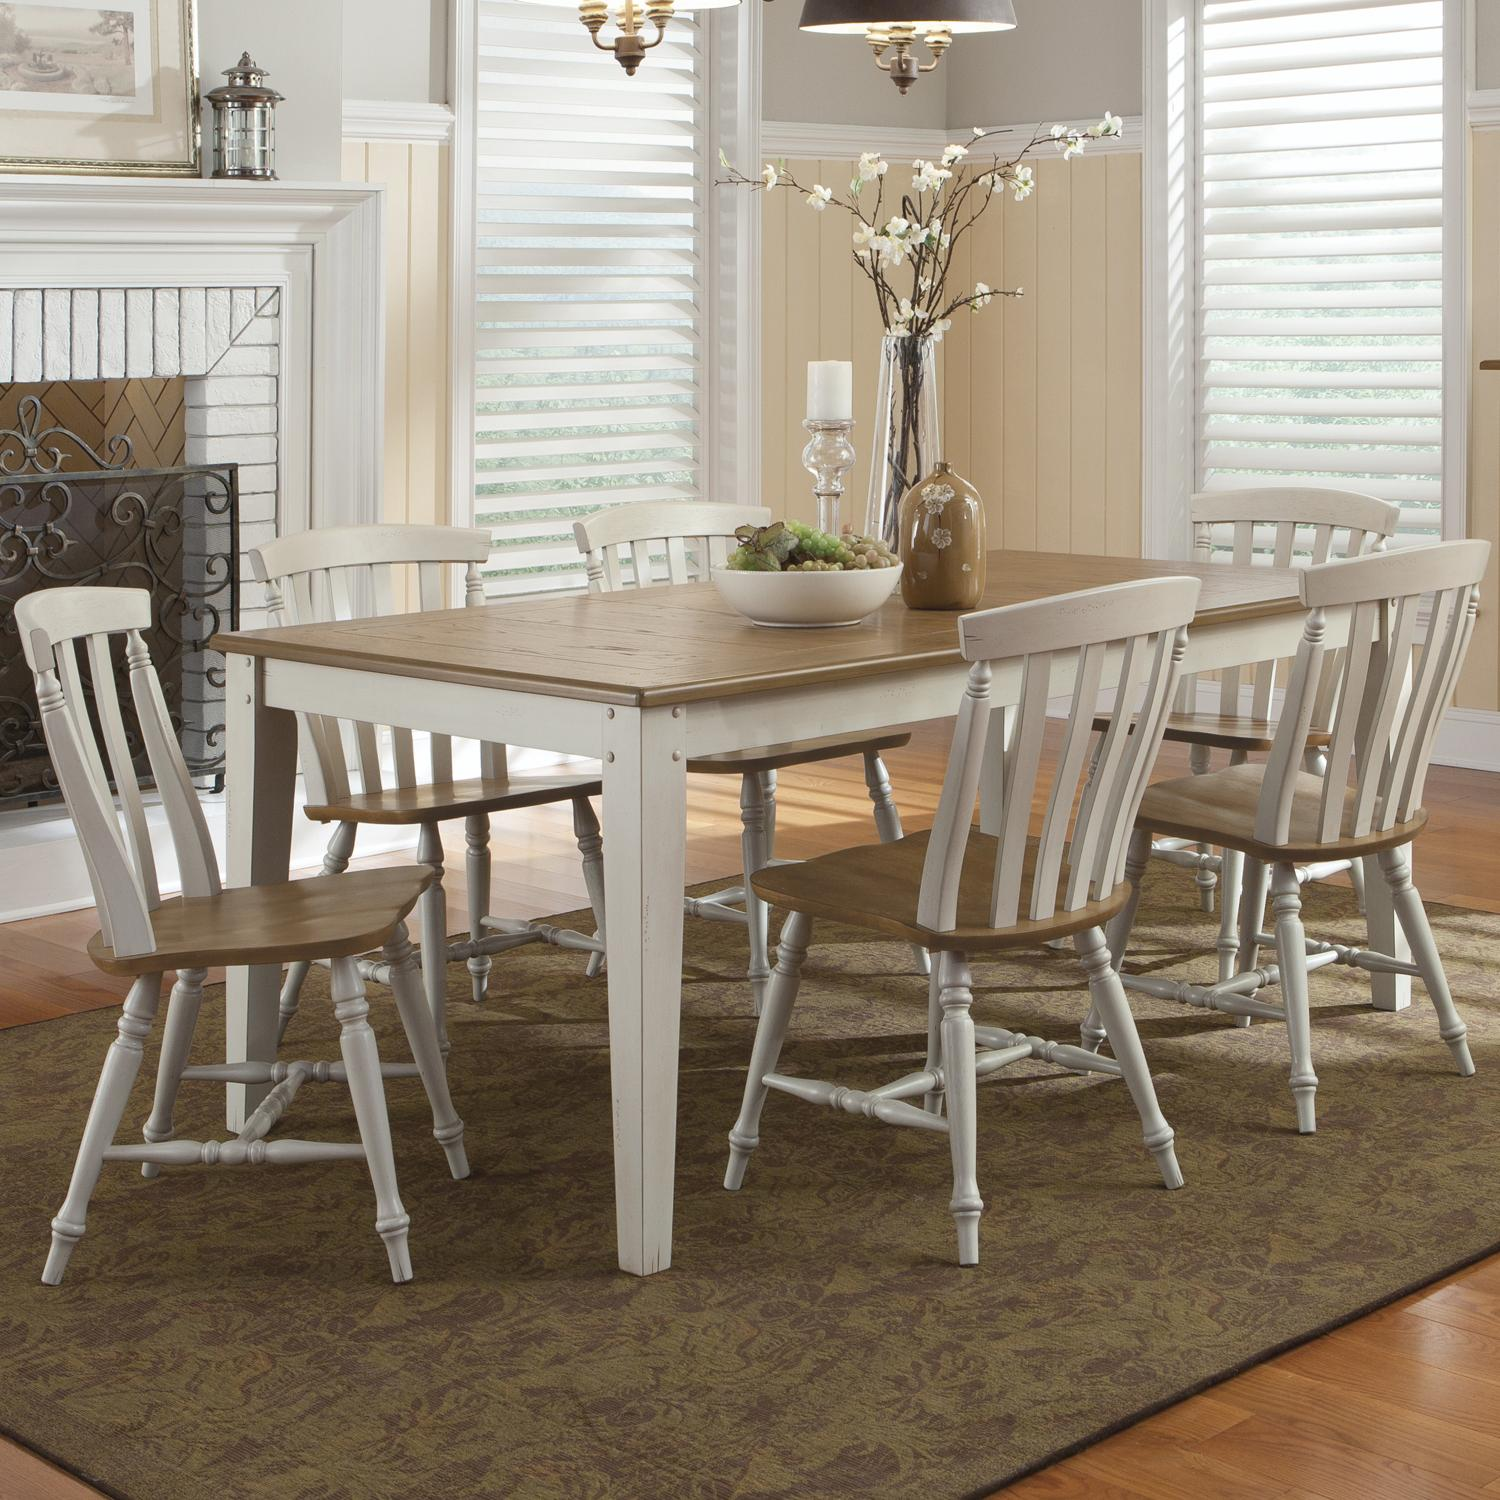 Al Fresco III 7 Piece Rectangular Table and Chairs Set by Liberty Furniture at SuperStore